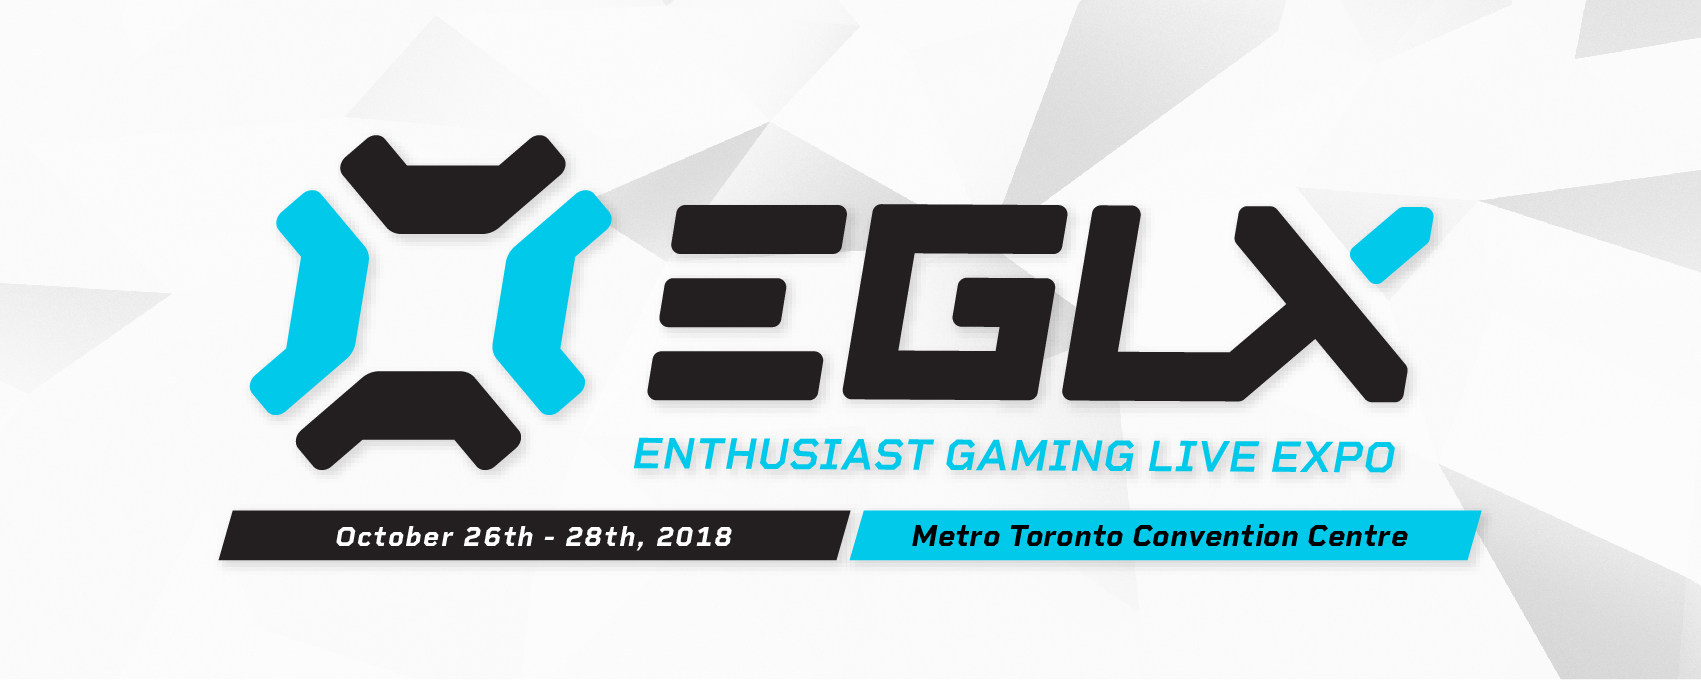 Tickets for EGLX - Enthusiast Gaming Live Expo Fall 2018 in Toronto from ShowClix